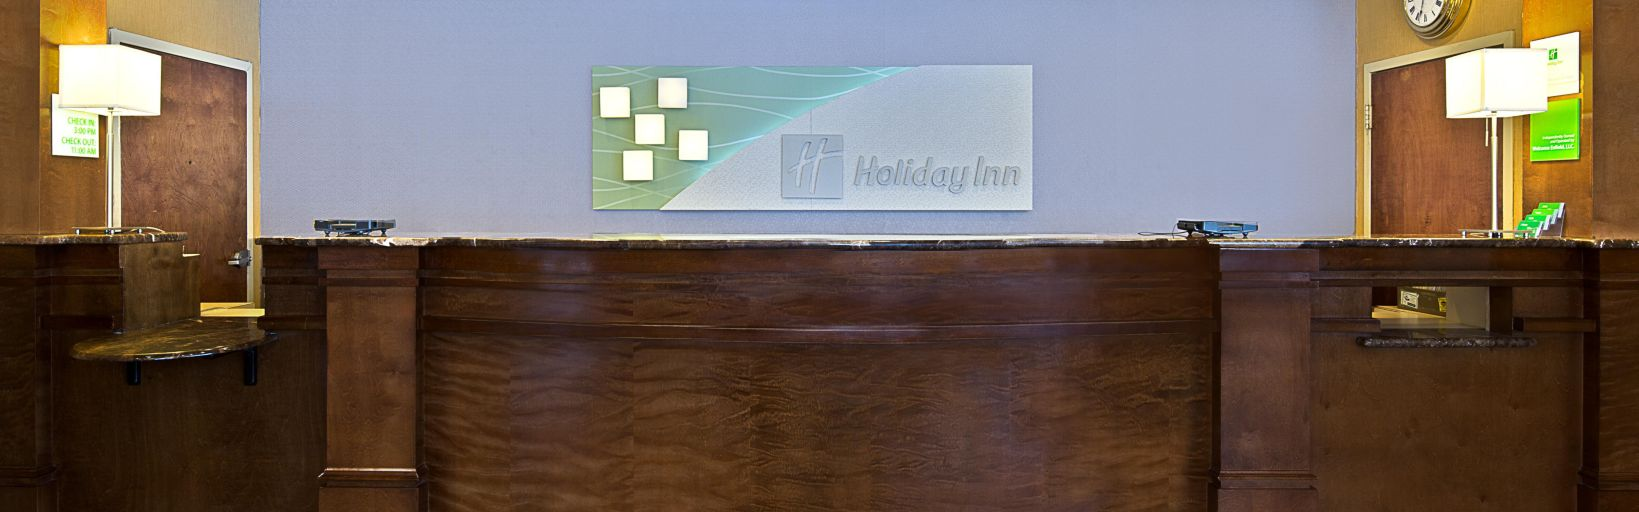 Holiday Inn Springfield South Enfield CT Hotel By IHG - 2125 us route 5 south windsor vt map